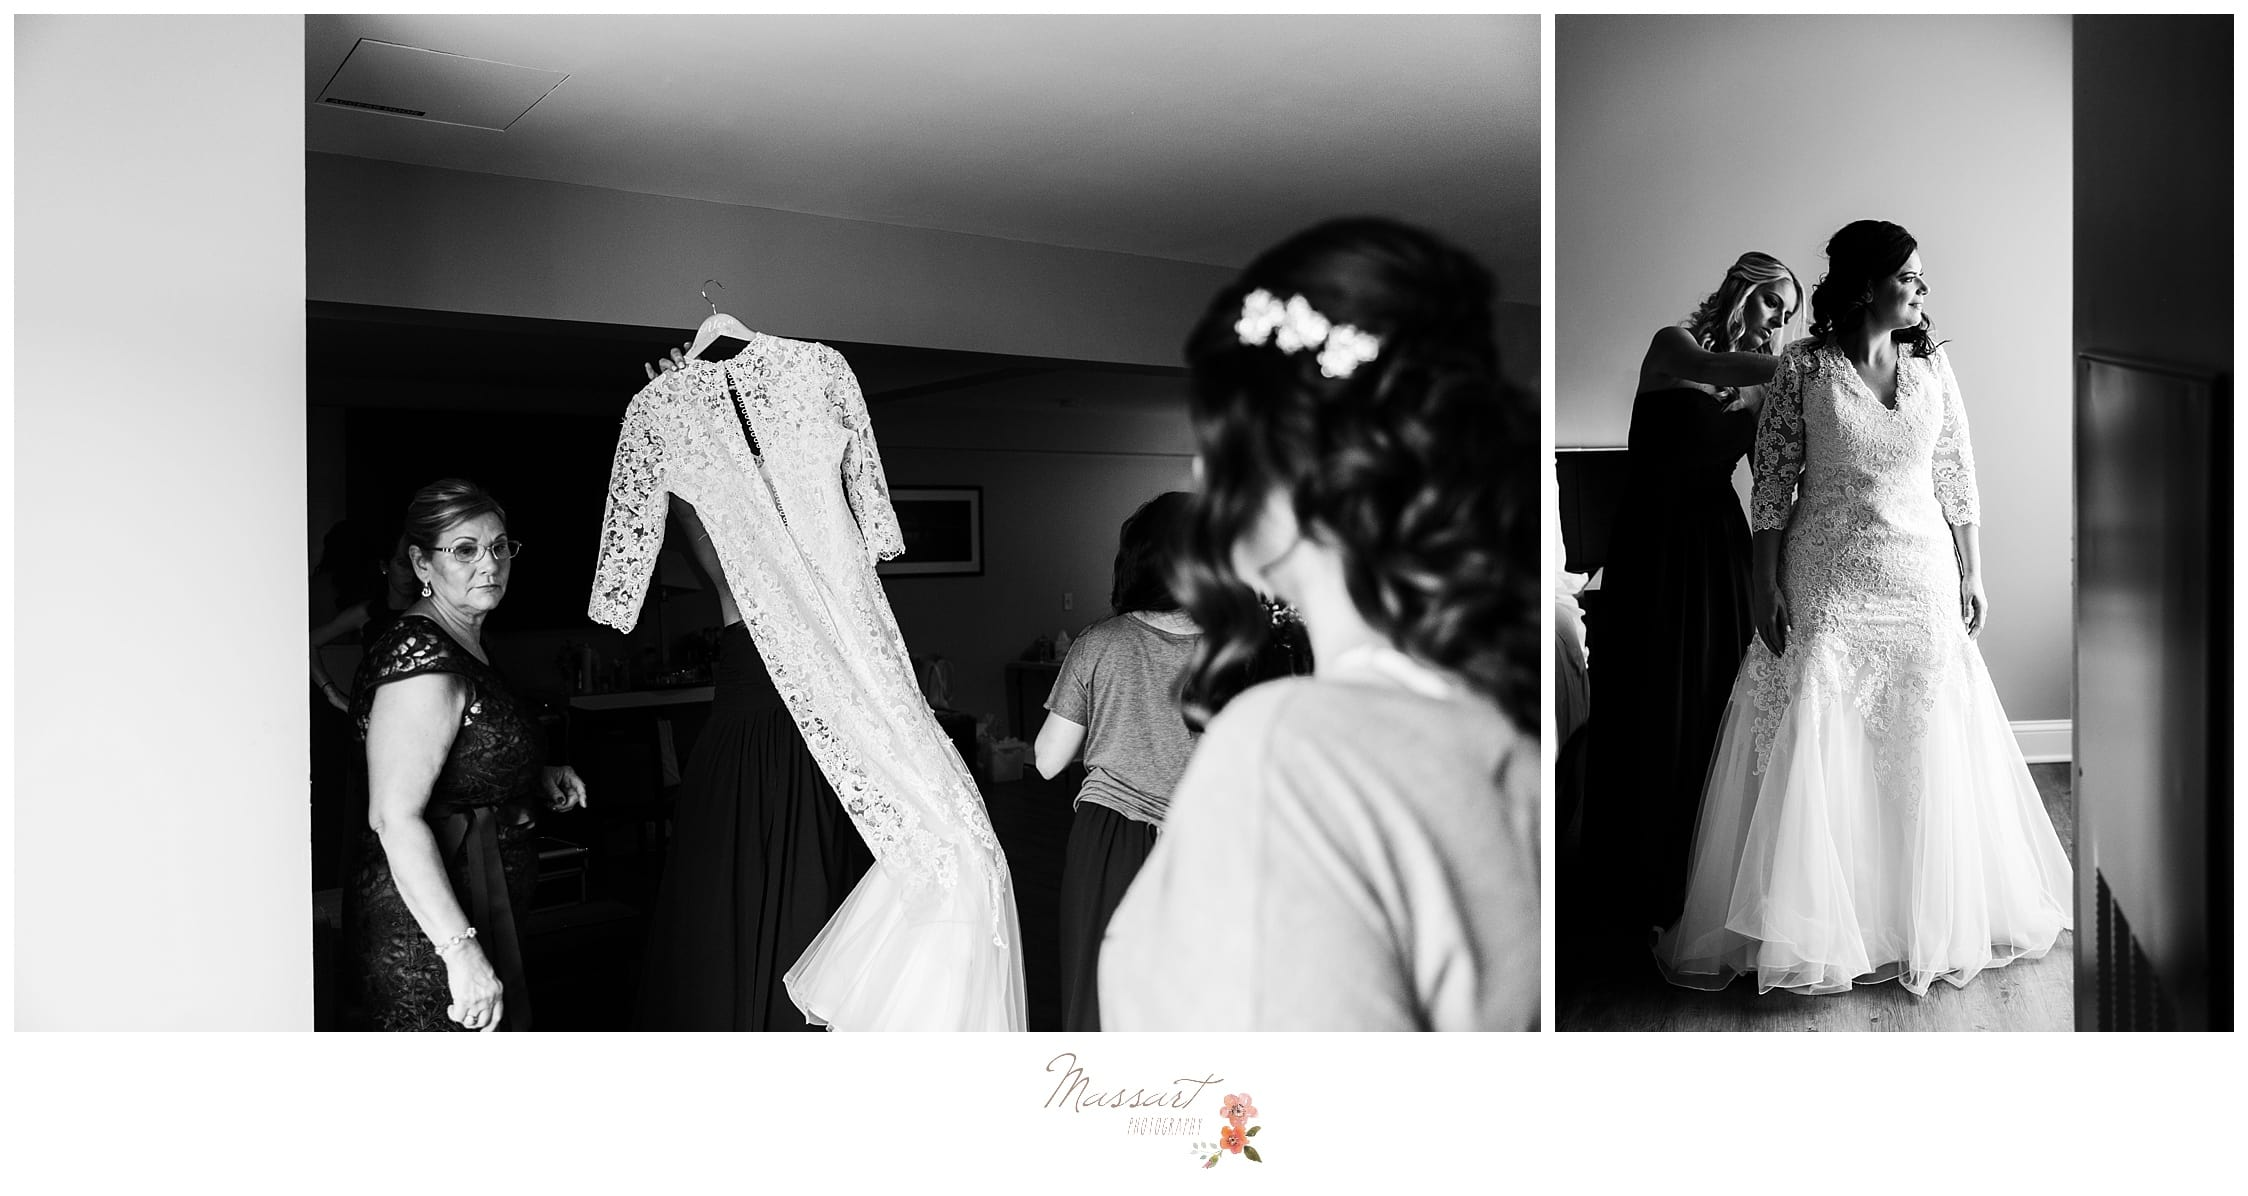 Mother of the bride brings the wedding gown for getting ready pictures by massart photographers of warwick rhode island